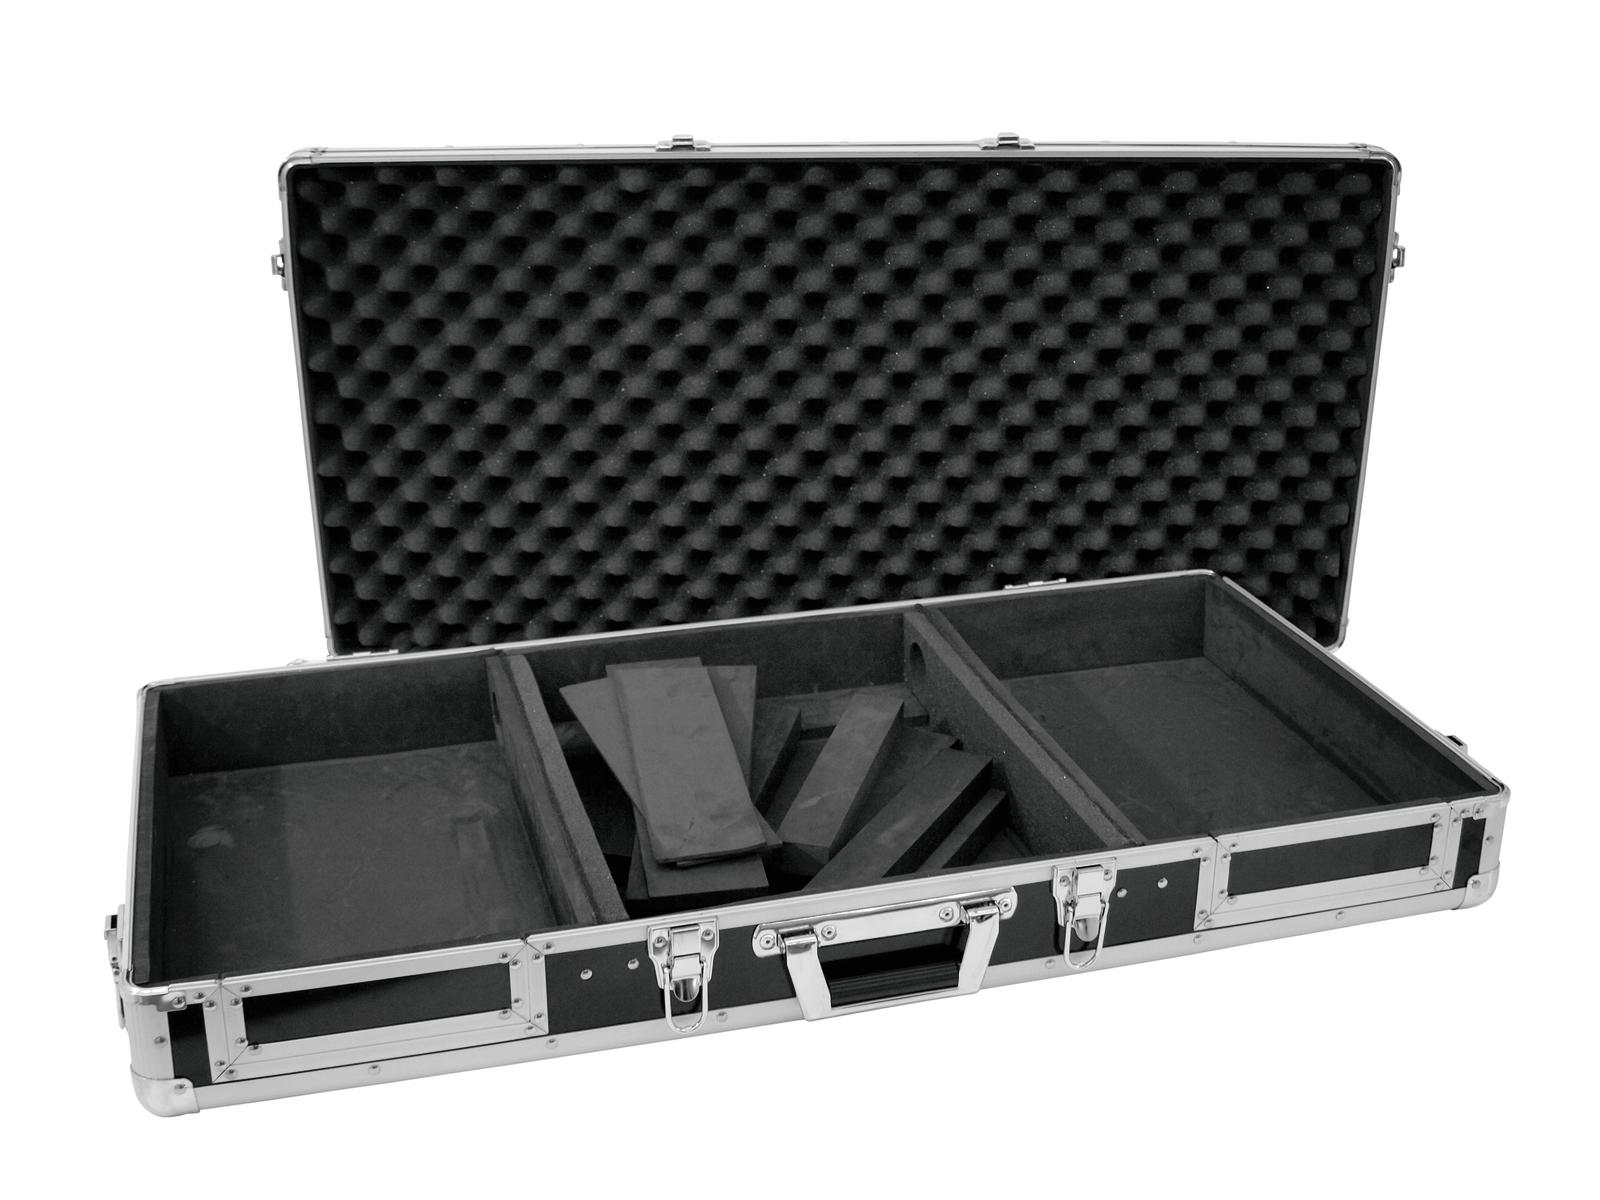 Flight Case Custodia Per Console Cdj Mixer Pc ROADINGER DIGI-1 2xCD/1xM-12 bk